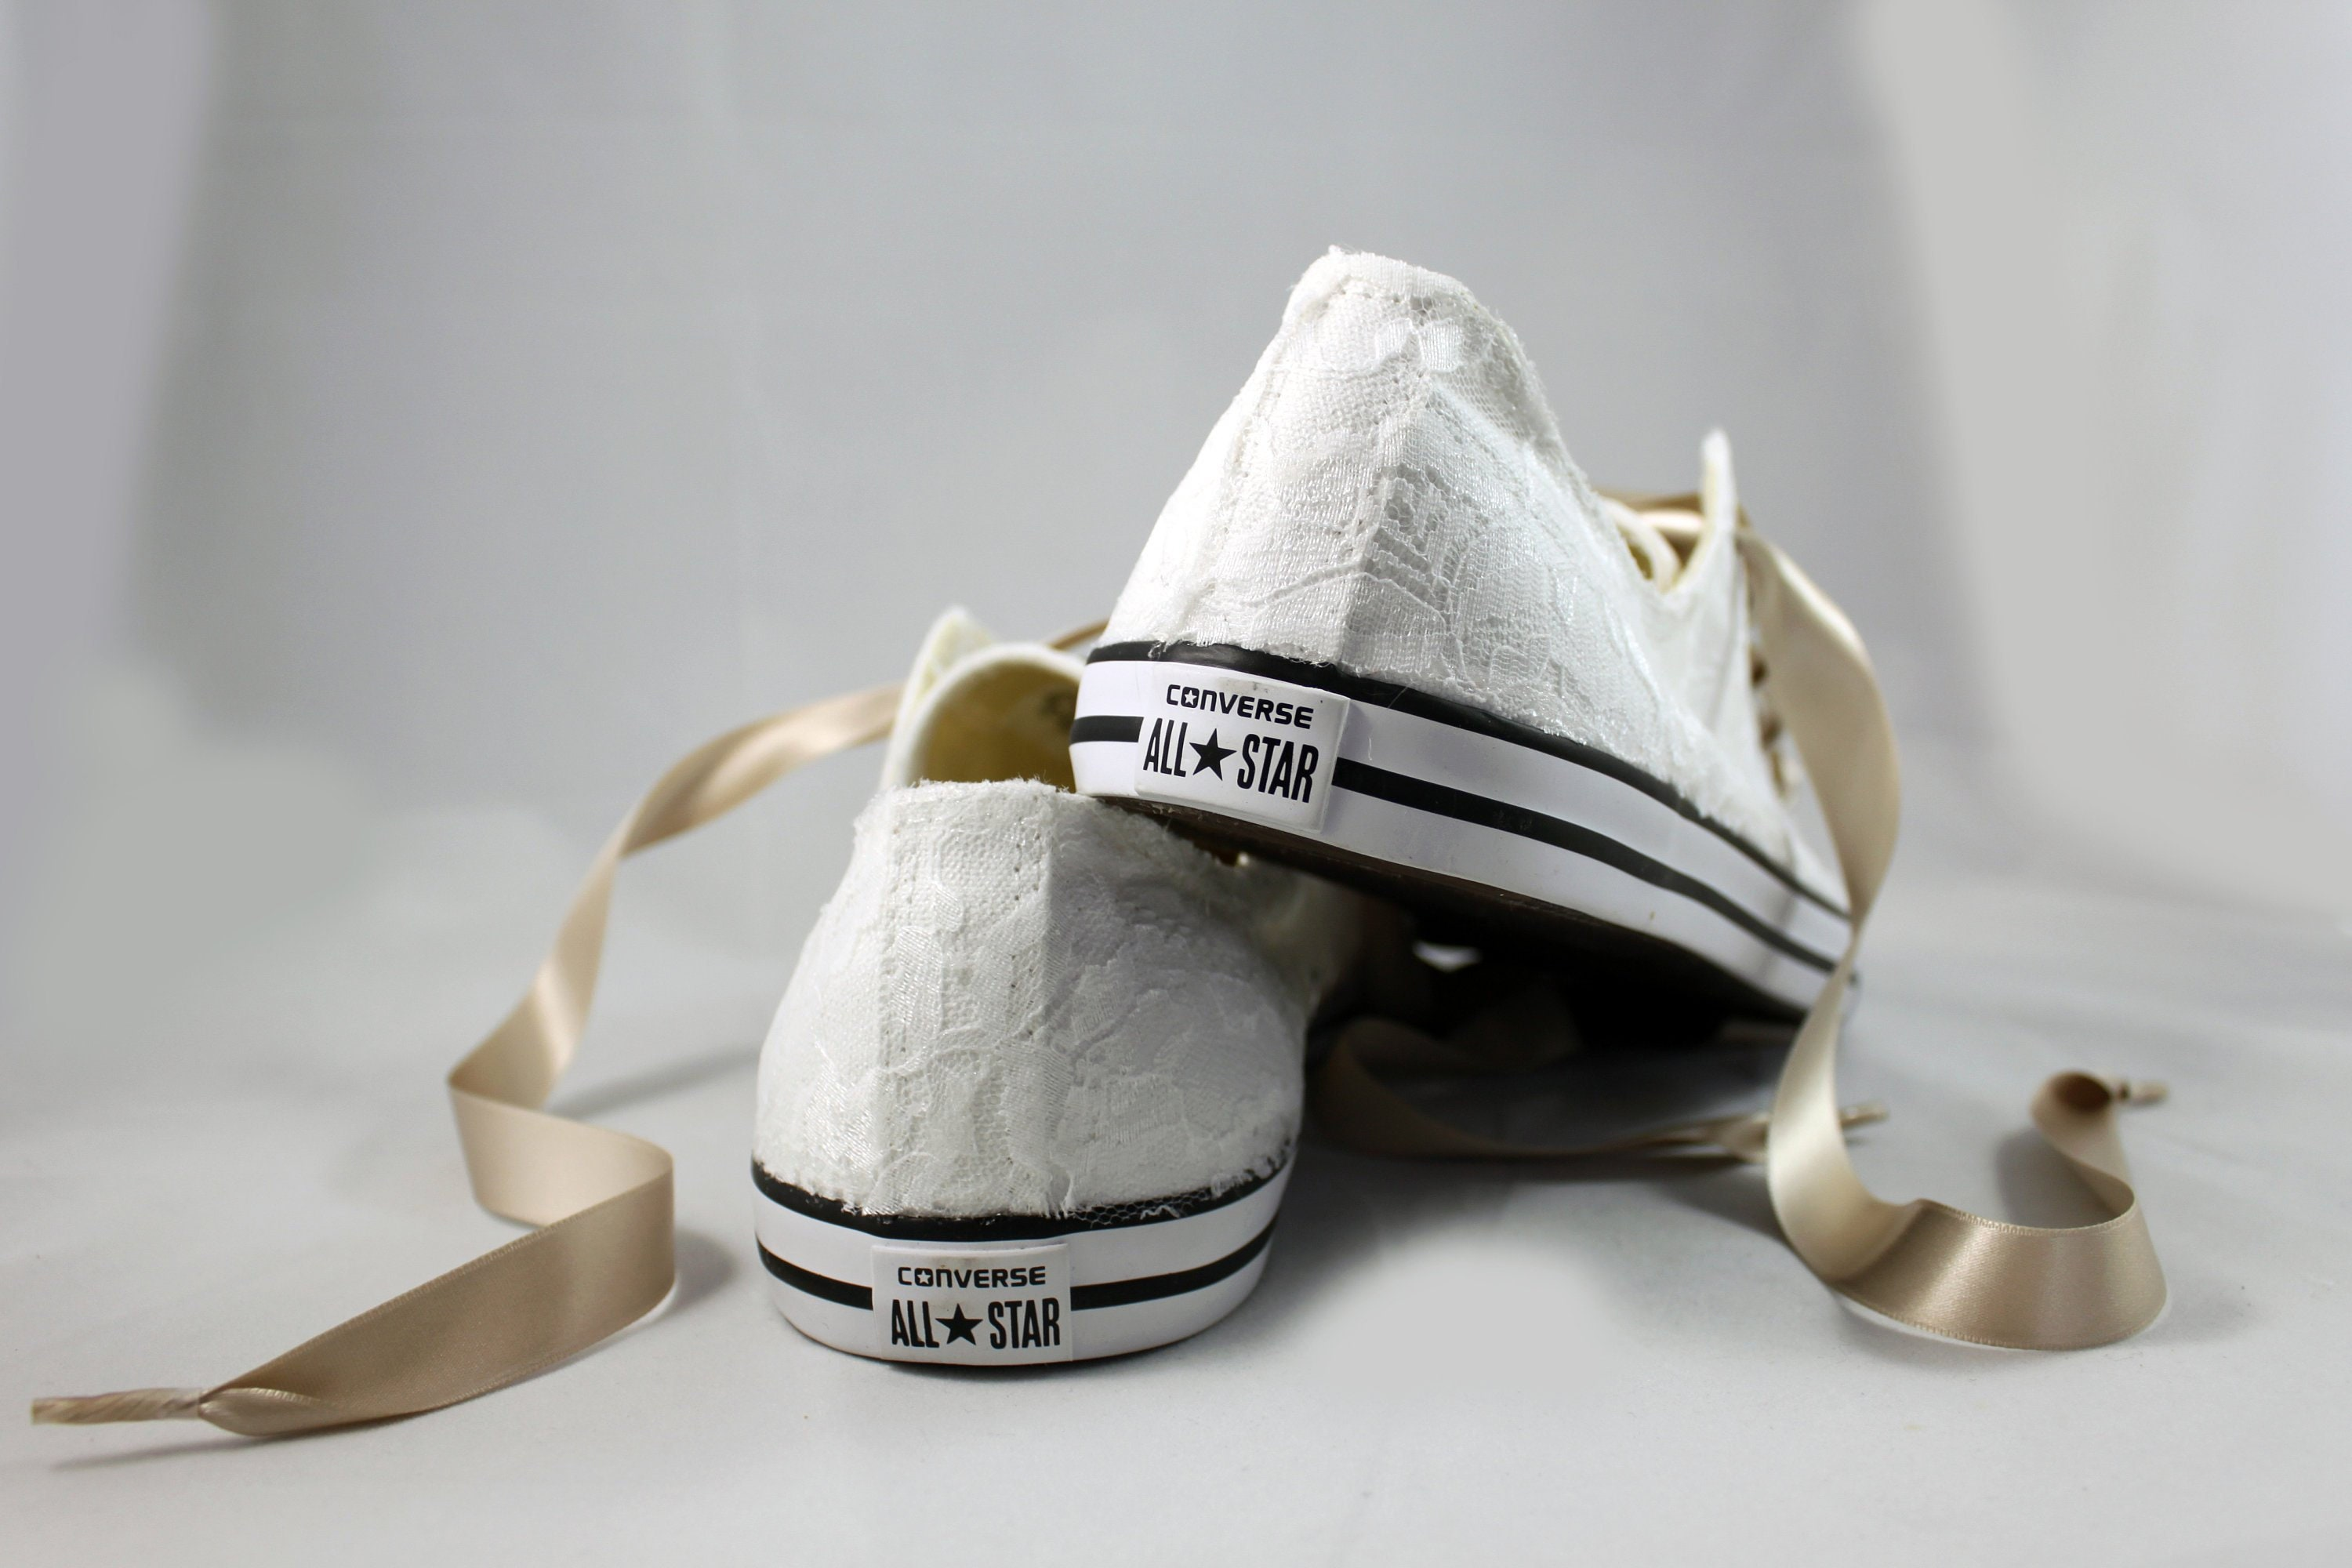 converse all star wedding